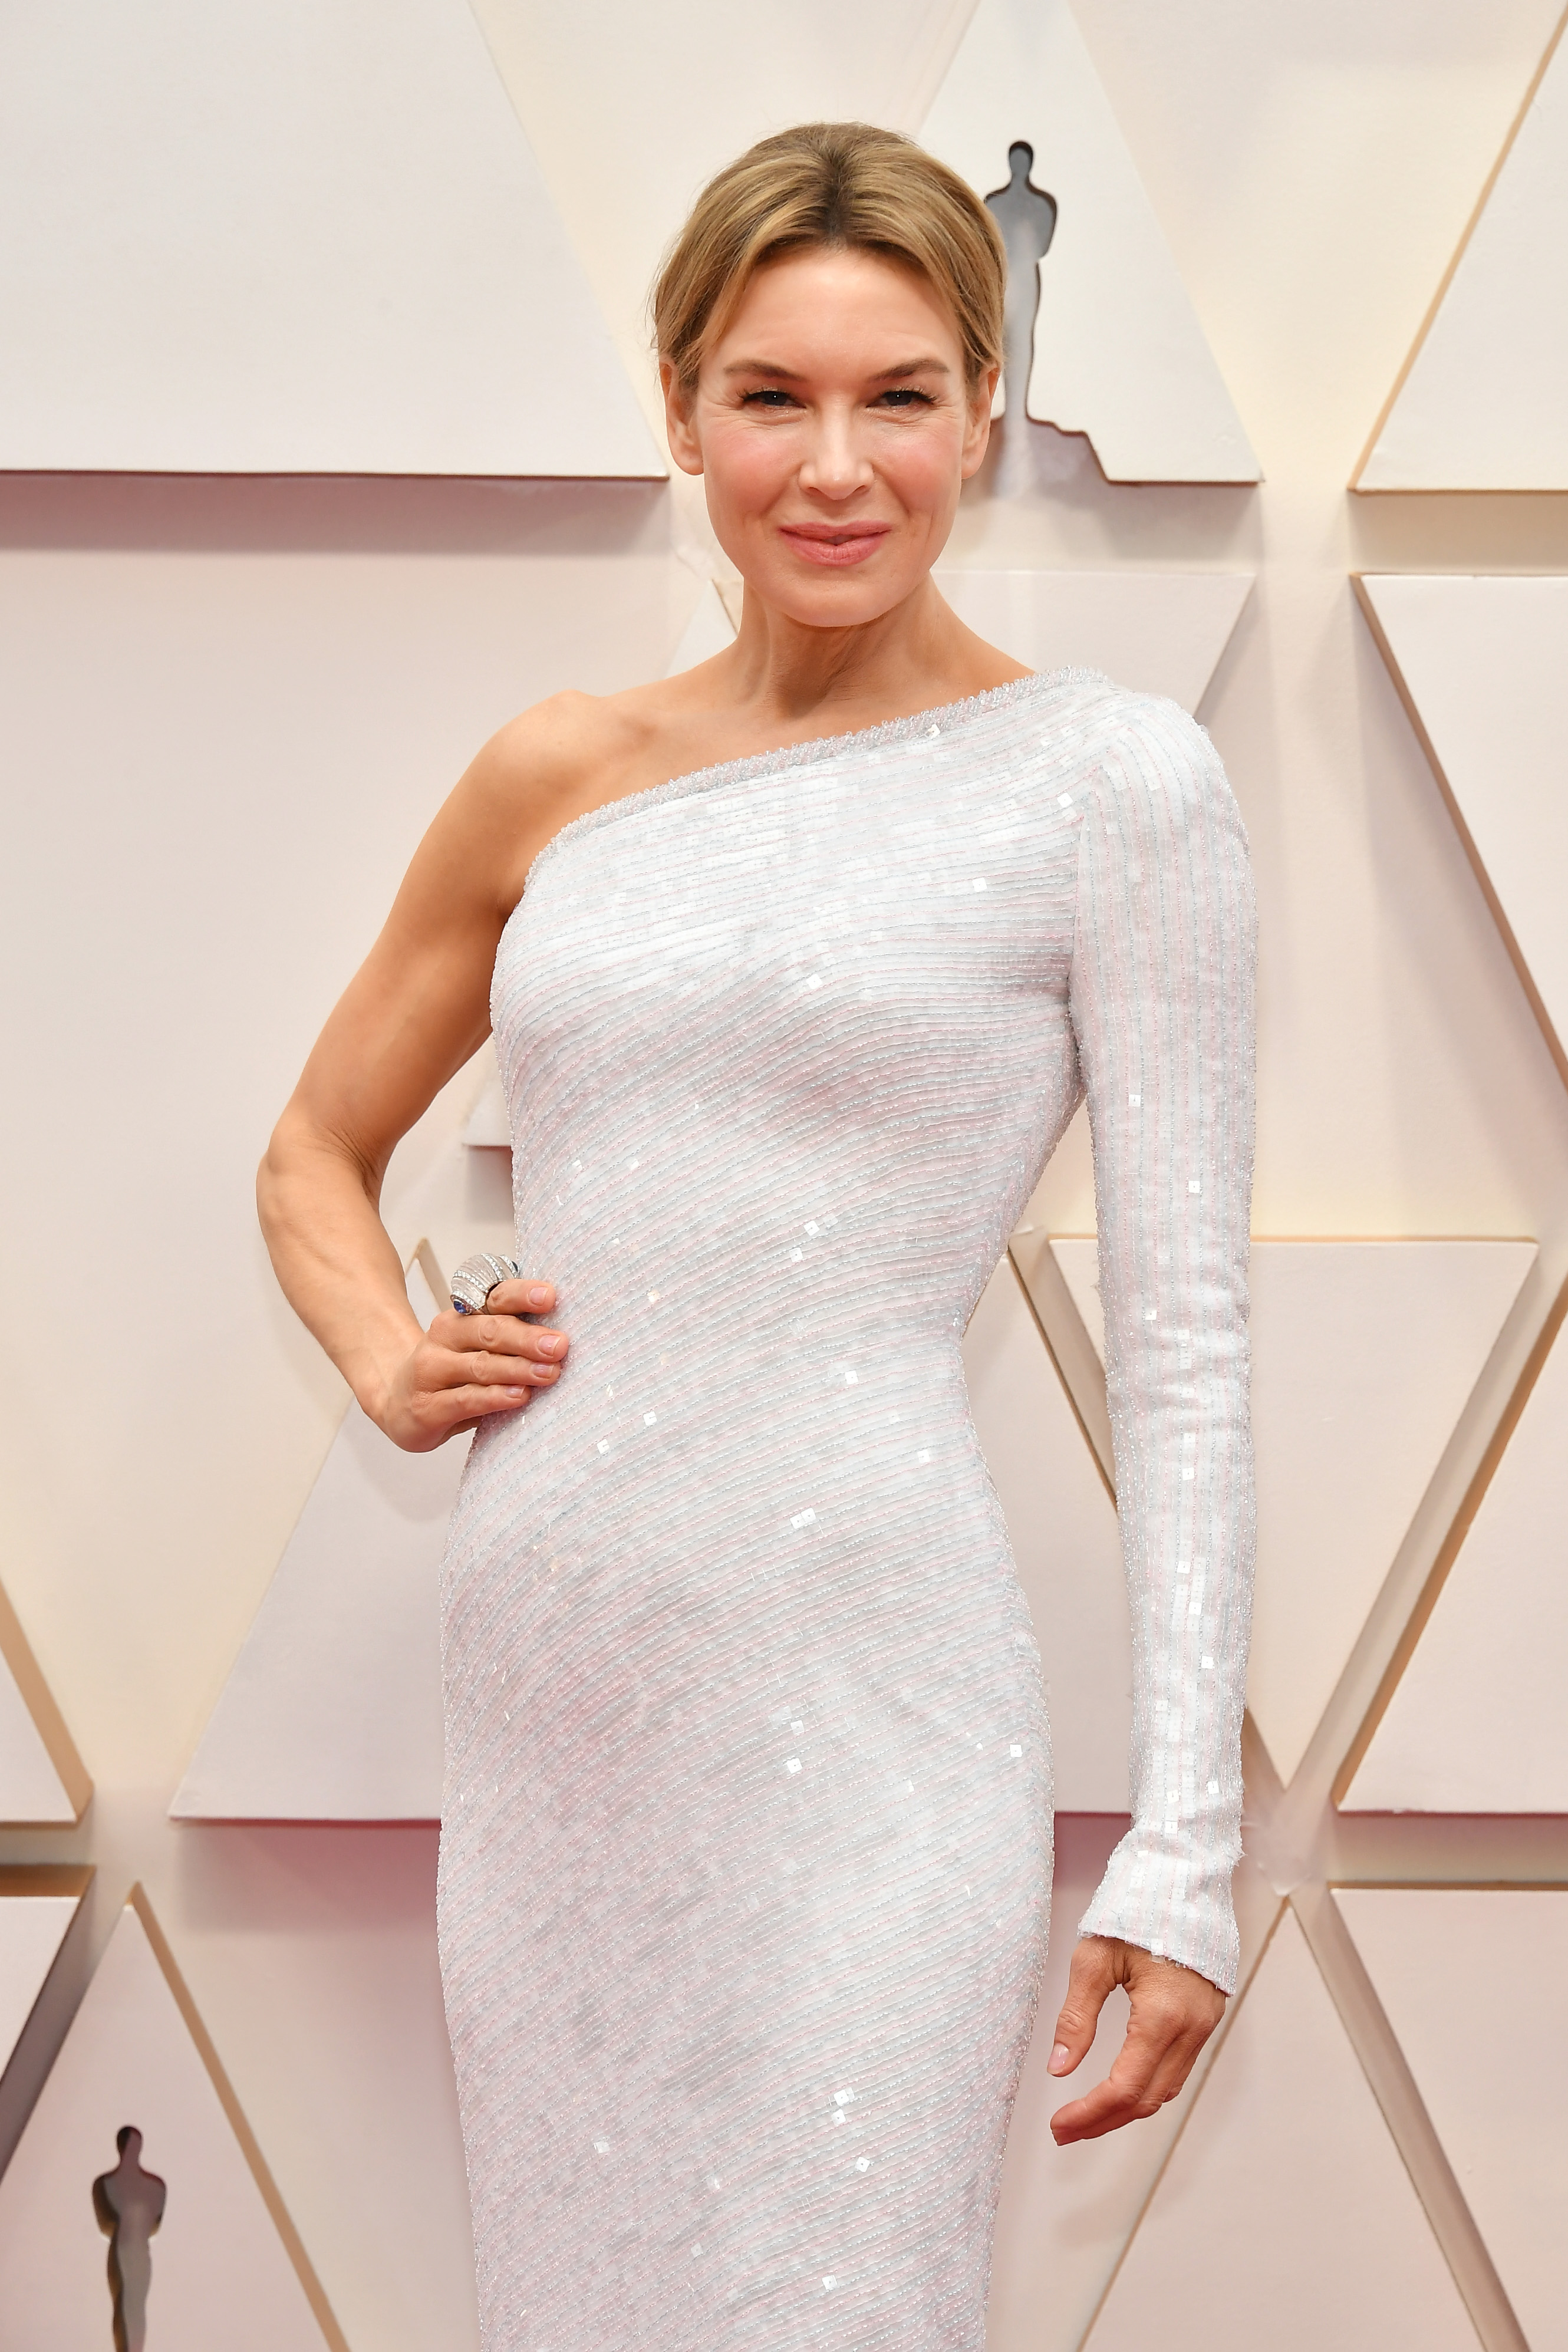 HOLLYWOOD, CALIFORNIA - FEBRUARY 09: Renée Zellweger attends the 92nd Annual Academy Awards at Hollywood and Highland on February 09, 2020 in Hollywood, California. (Photo by Amy Sussman/Getty Images)